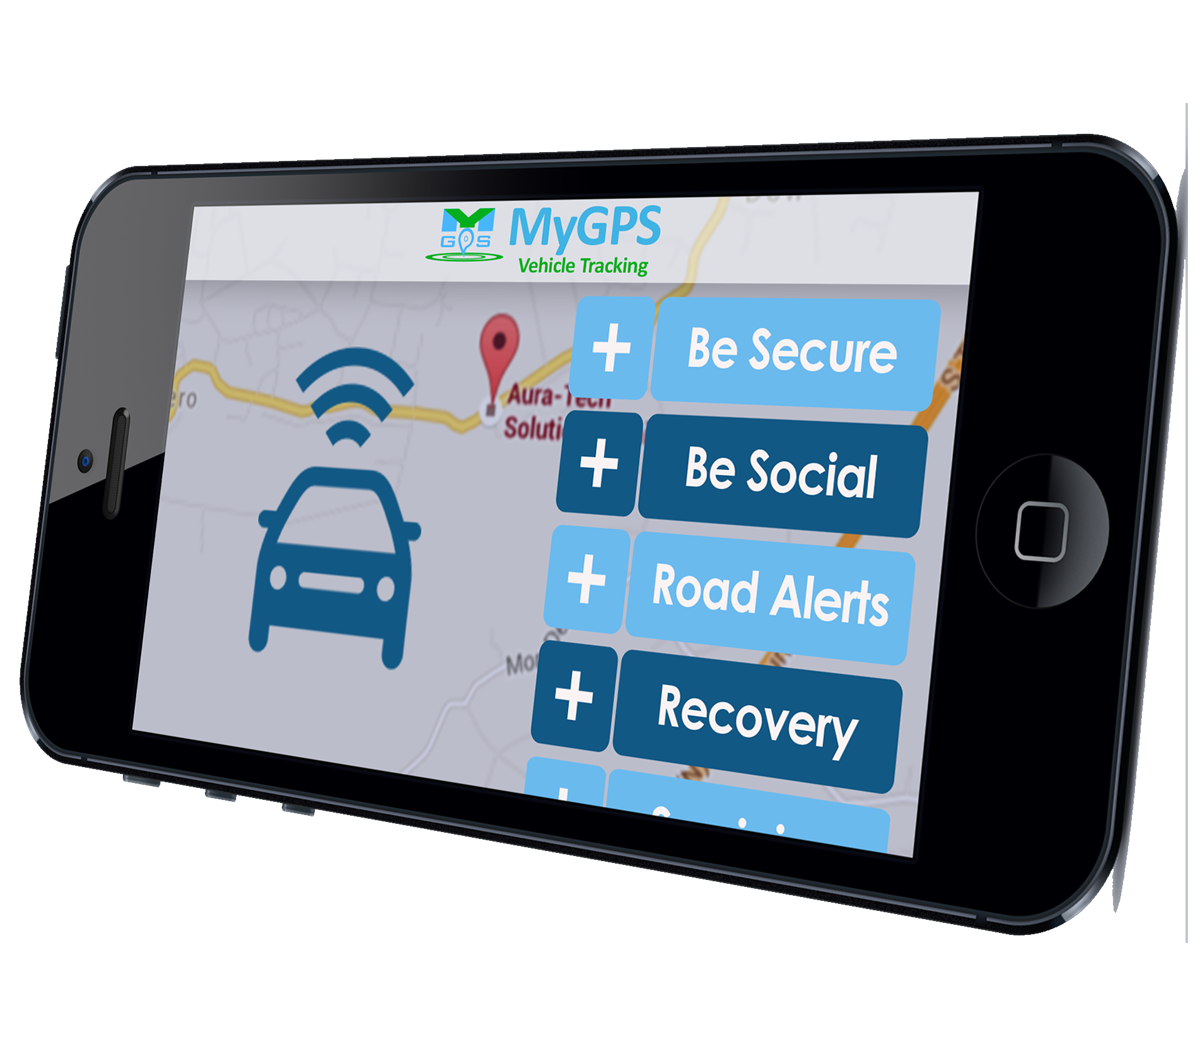 mygps-introductory-paragraph-image